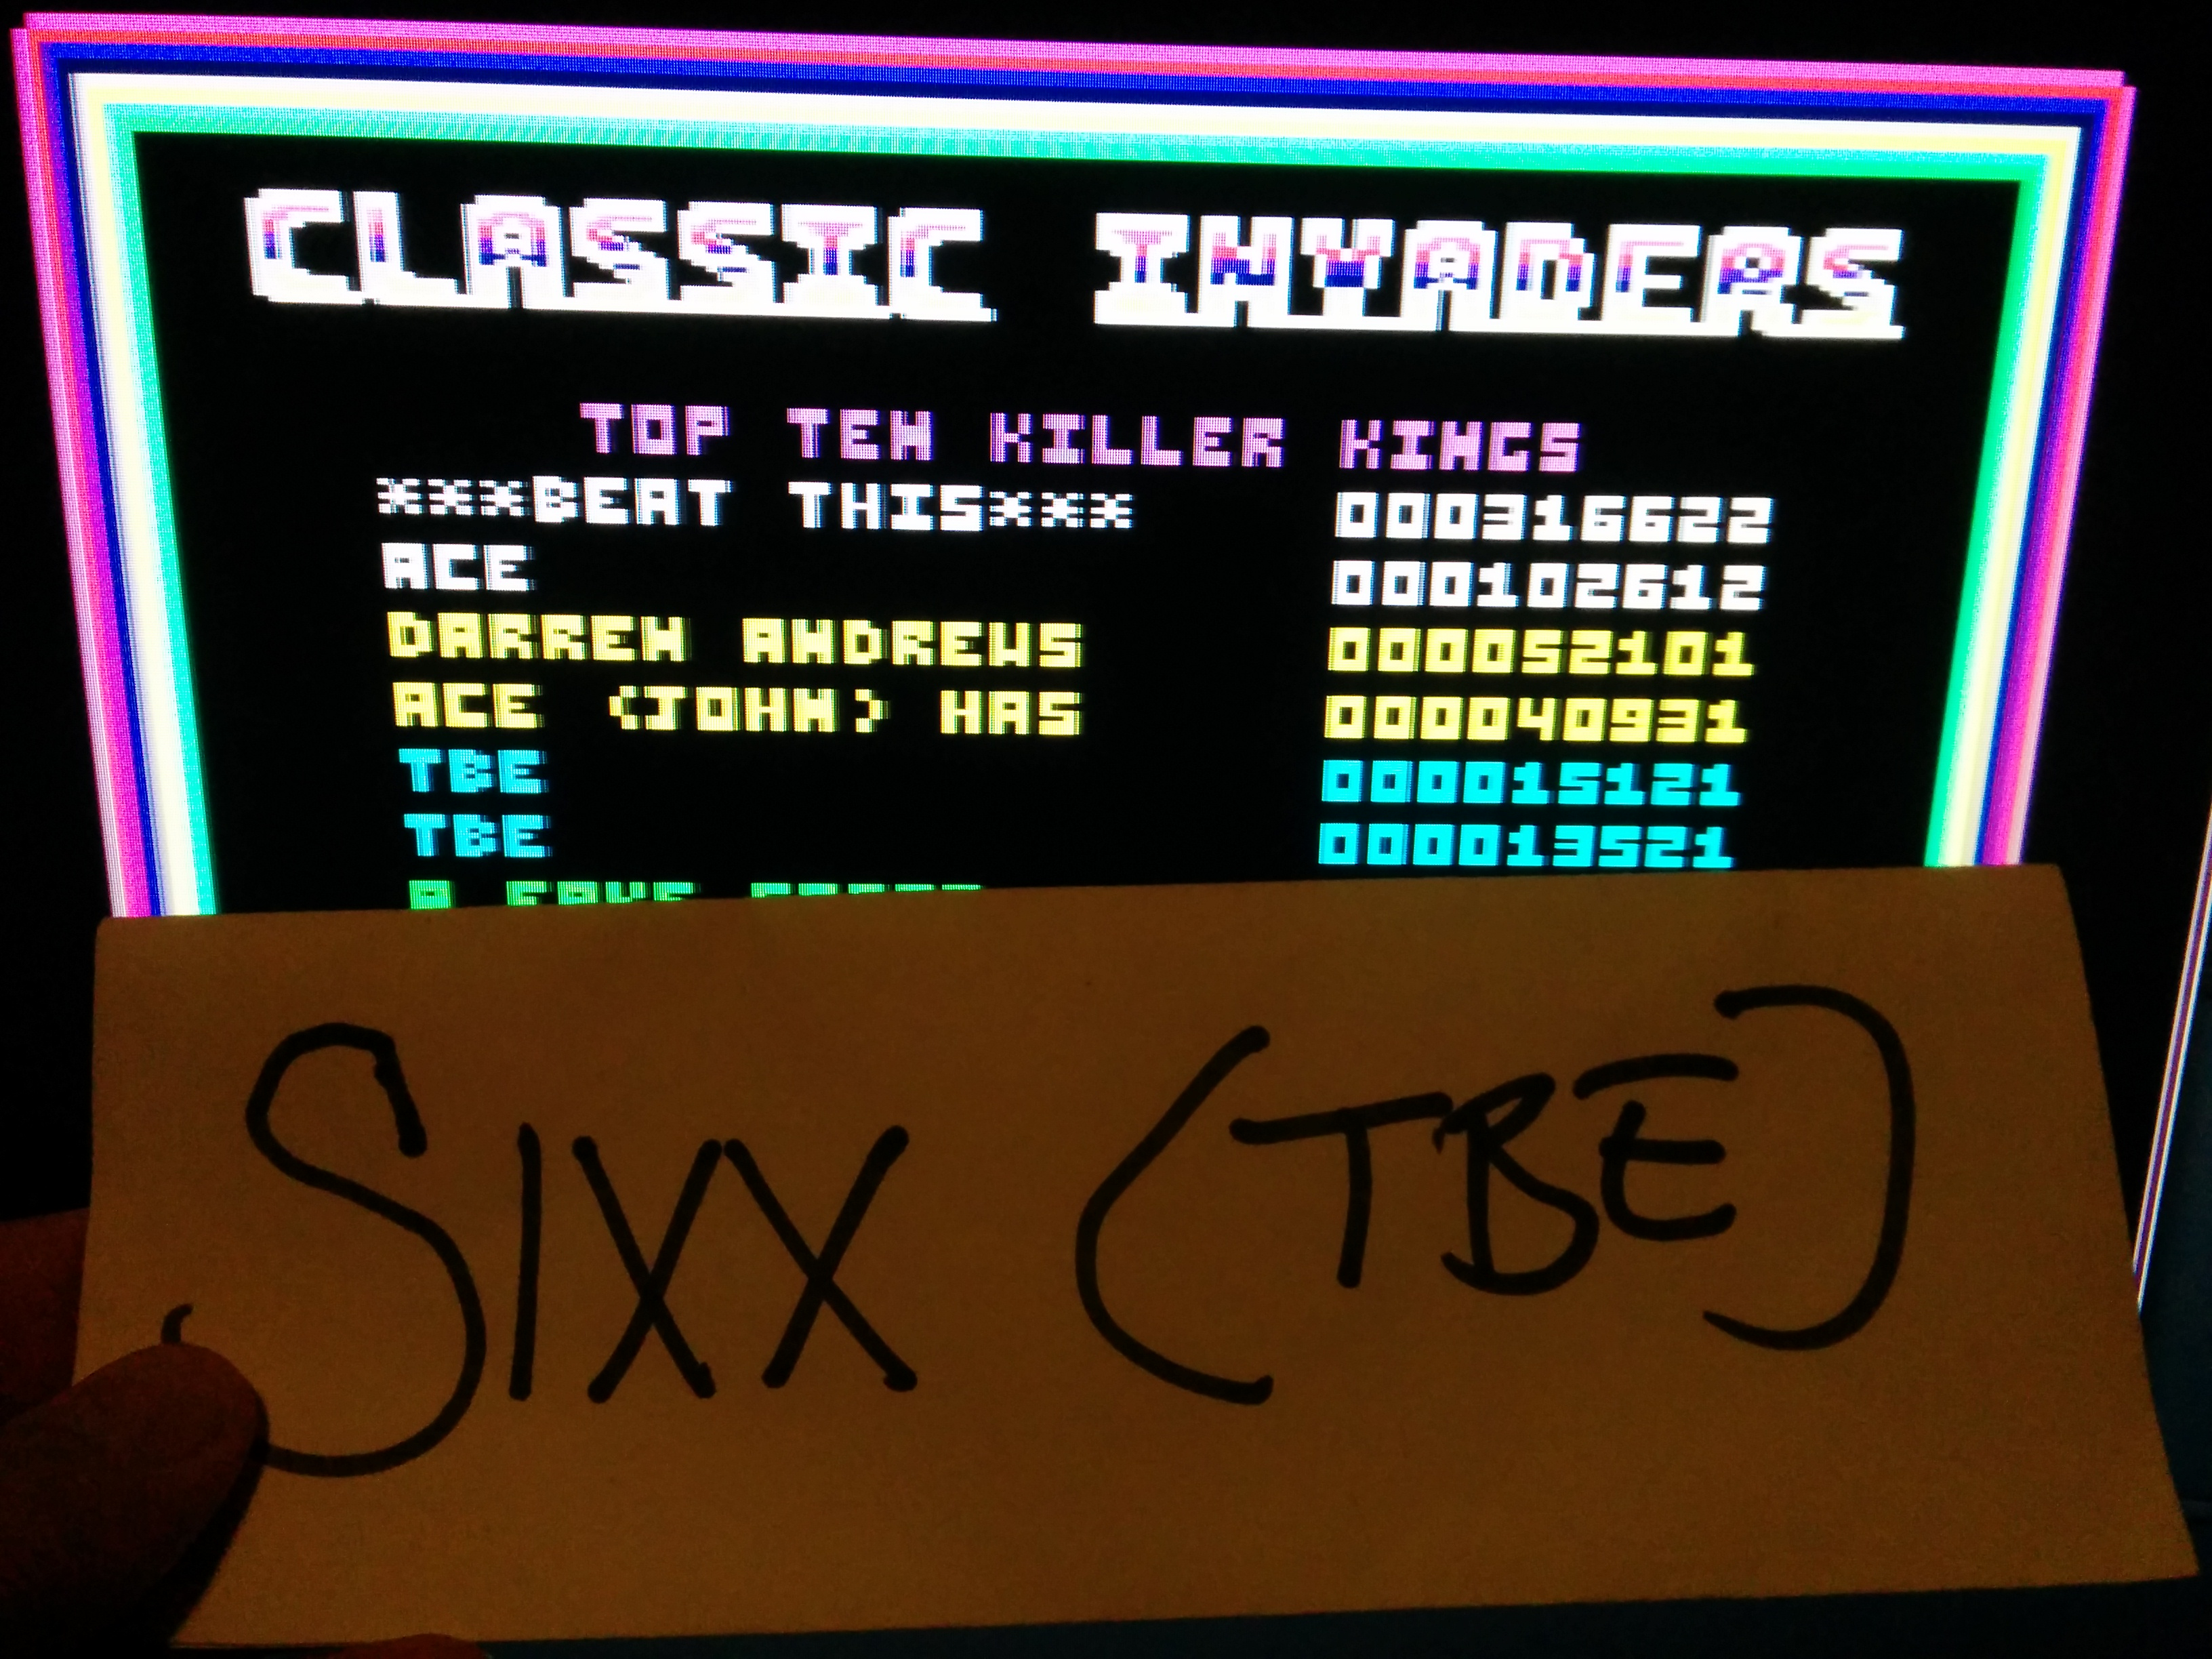 Sixx: Classic Invaders (Amstrad CPC Emulated) 15,121 points on 2014-08-05 17:08:02